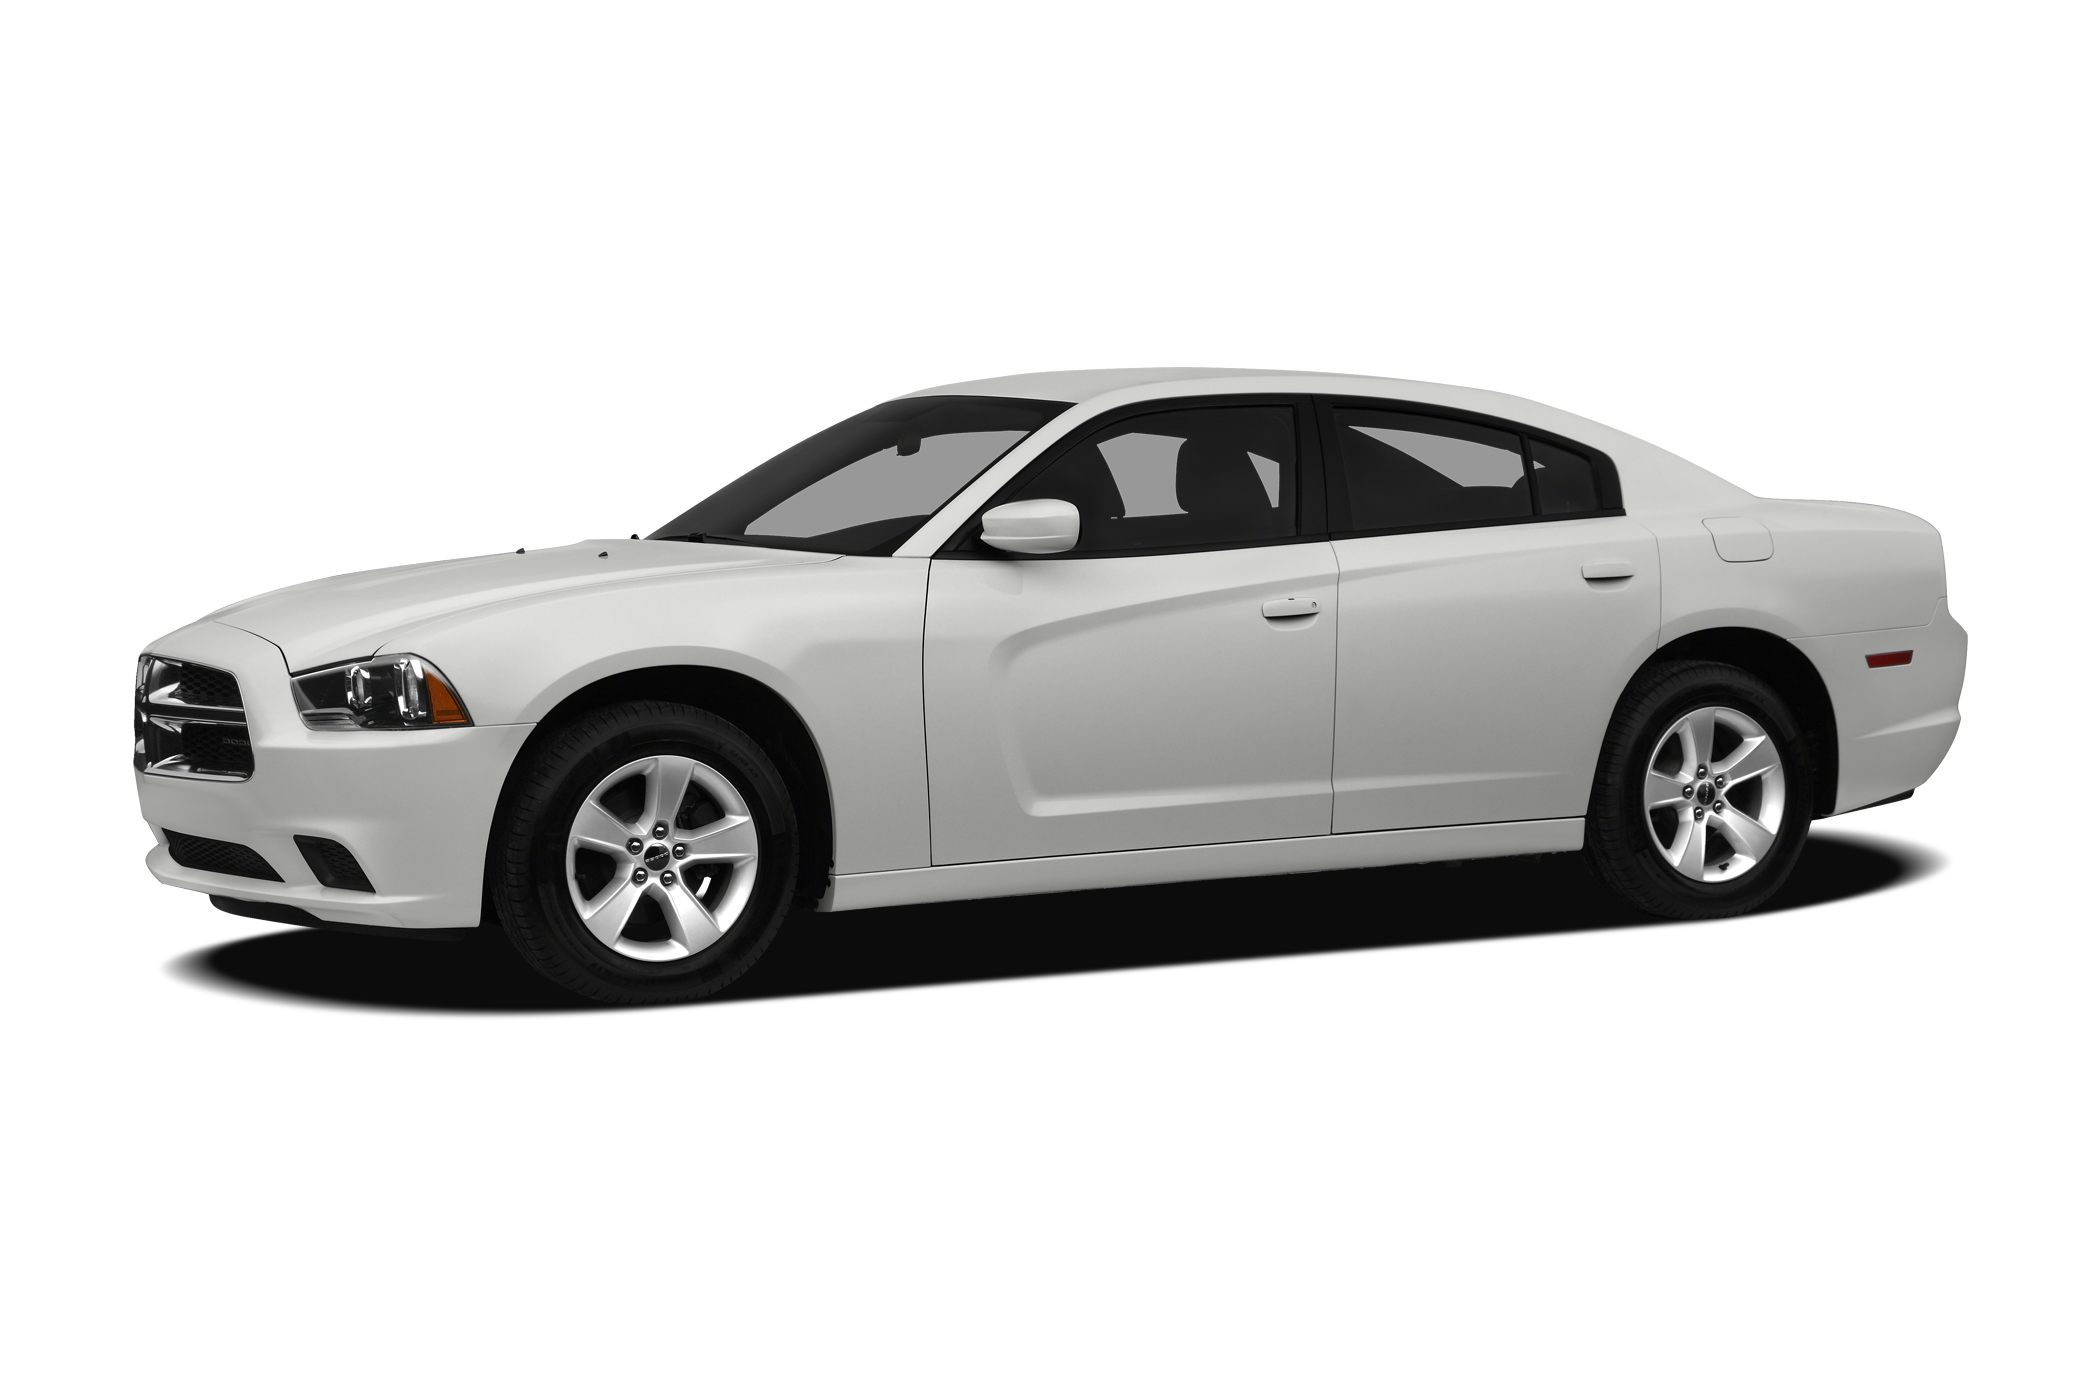 2012 Dodge Charger SXT Sedan for sale in Anderson for $24,500 with 31,425 miles